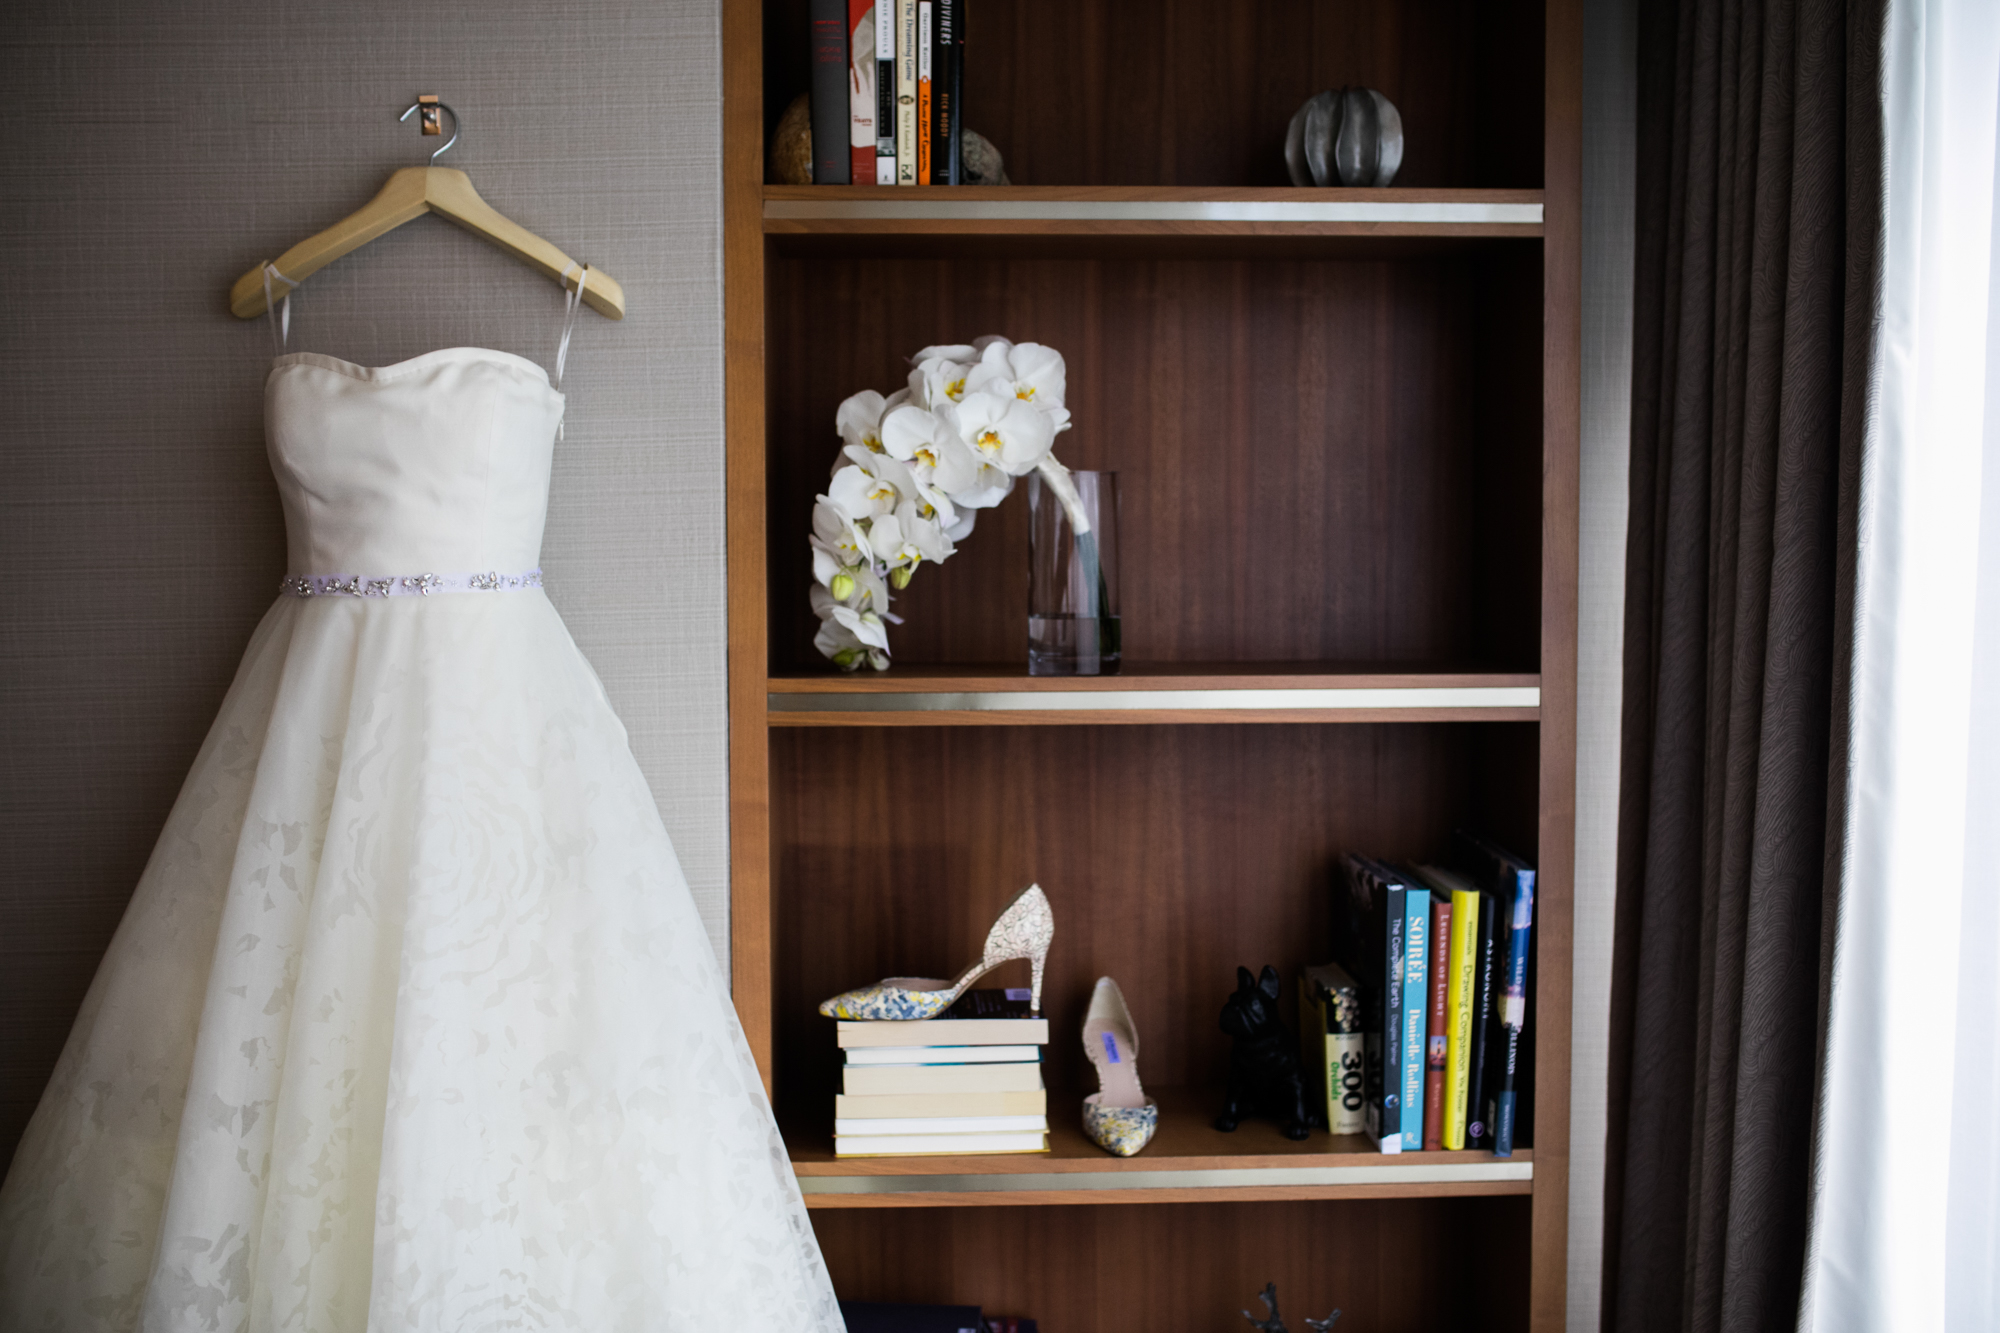 A bride's gown, shoes, and orchid bouquet for her wedding at Millennium Park Harris Rooftop in Chicago, Illinois.